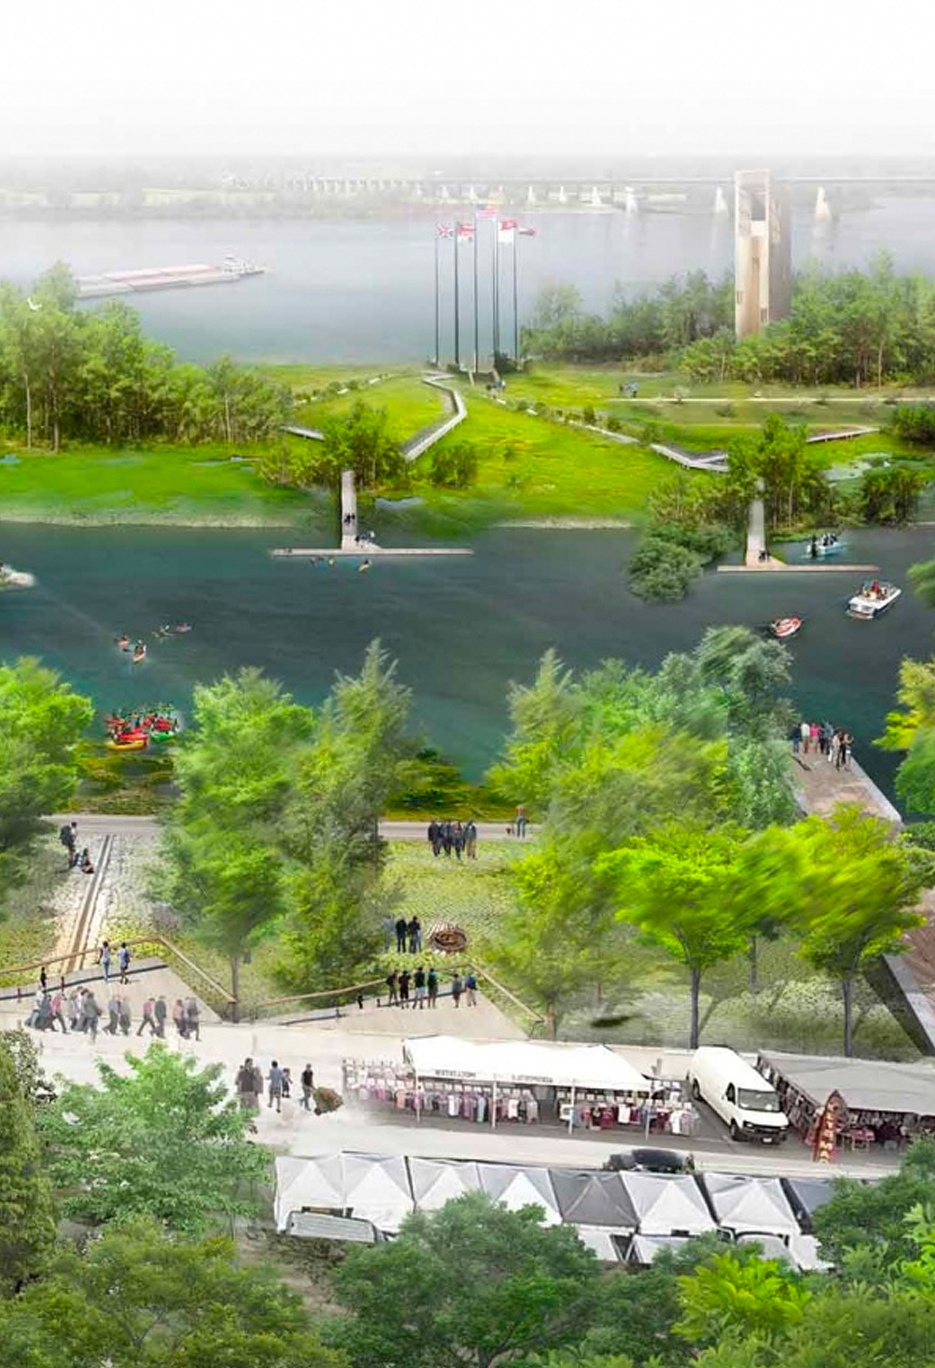 Memphis riverfront - The Memphis Riverfront Concept describes how six miles of the city's Mississippi riverfront can become a signature network of spaces and opportunities, tied into the city and its assets, that benefits the entire community and lifts Memphis as a whole.Why is this being created? The three design principles of this project are to foster positive encounters, civic pride and identity, and new understanding of the Mississippi River; restore natural conditions, native ecology, and a more dynamic relationship between people and the river; and connect assets along the river, the riverfront to the city, and people with each other.Learn more about this ongoing project >>